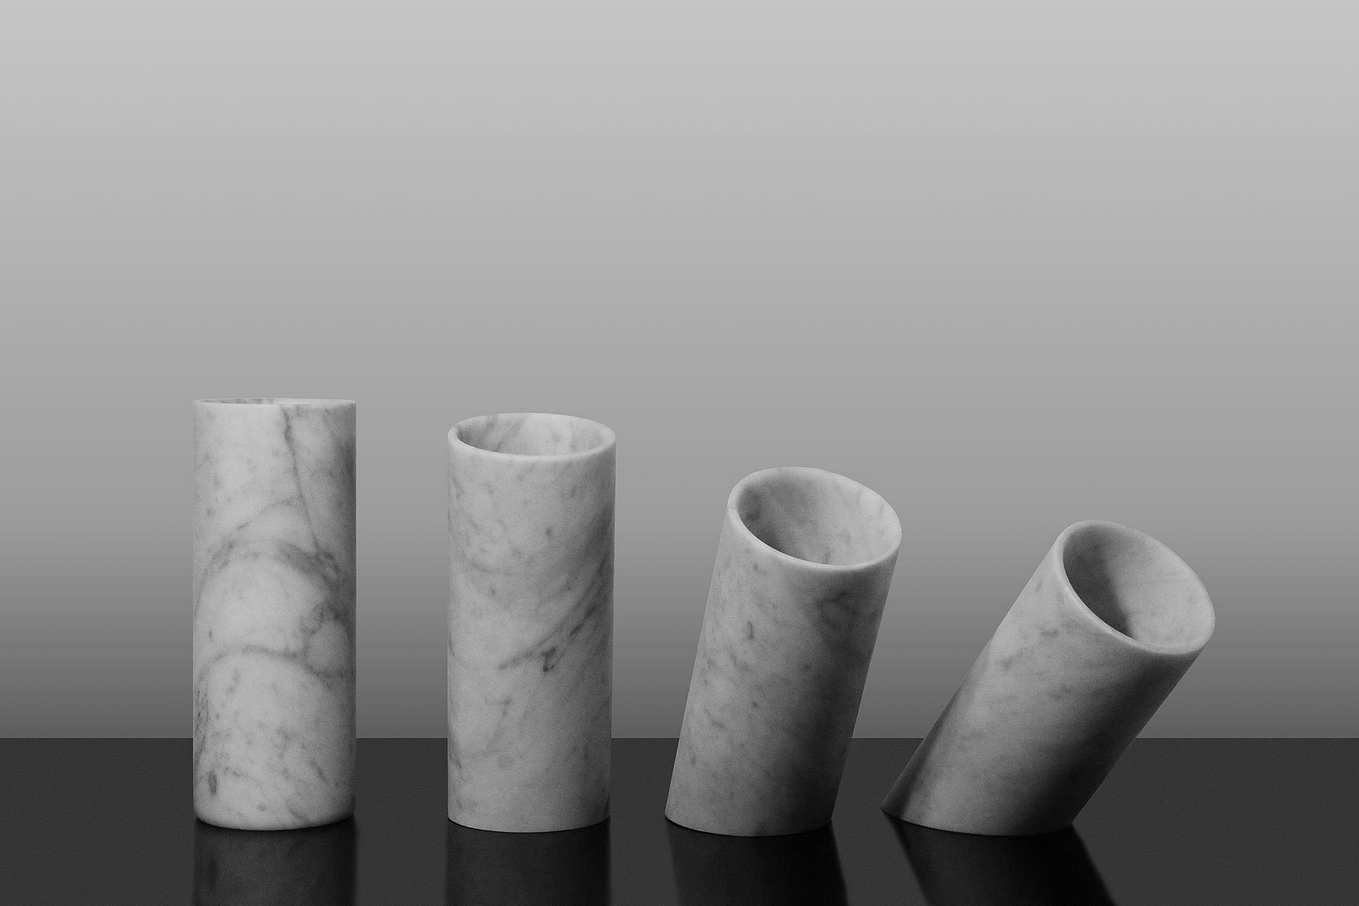 marble-vases-made-in-italy-moreno-ratti-7